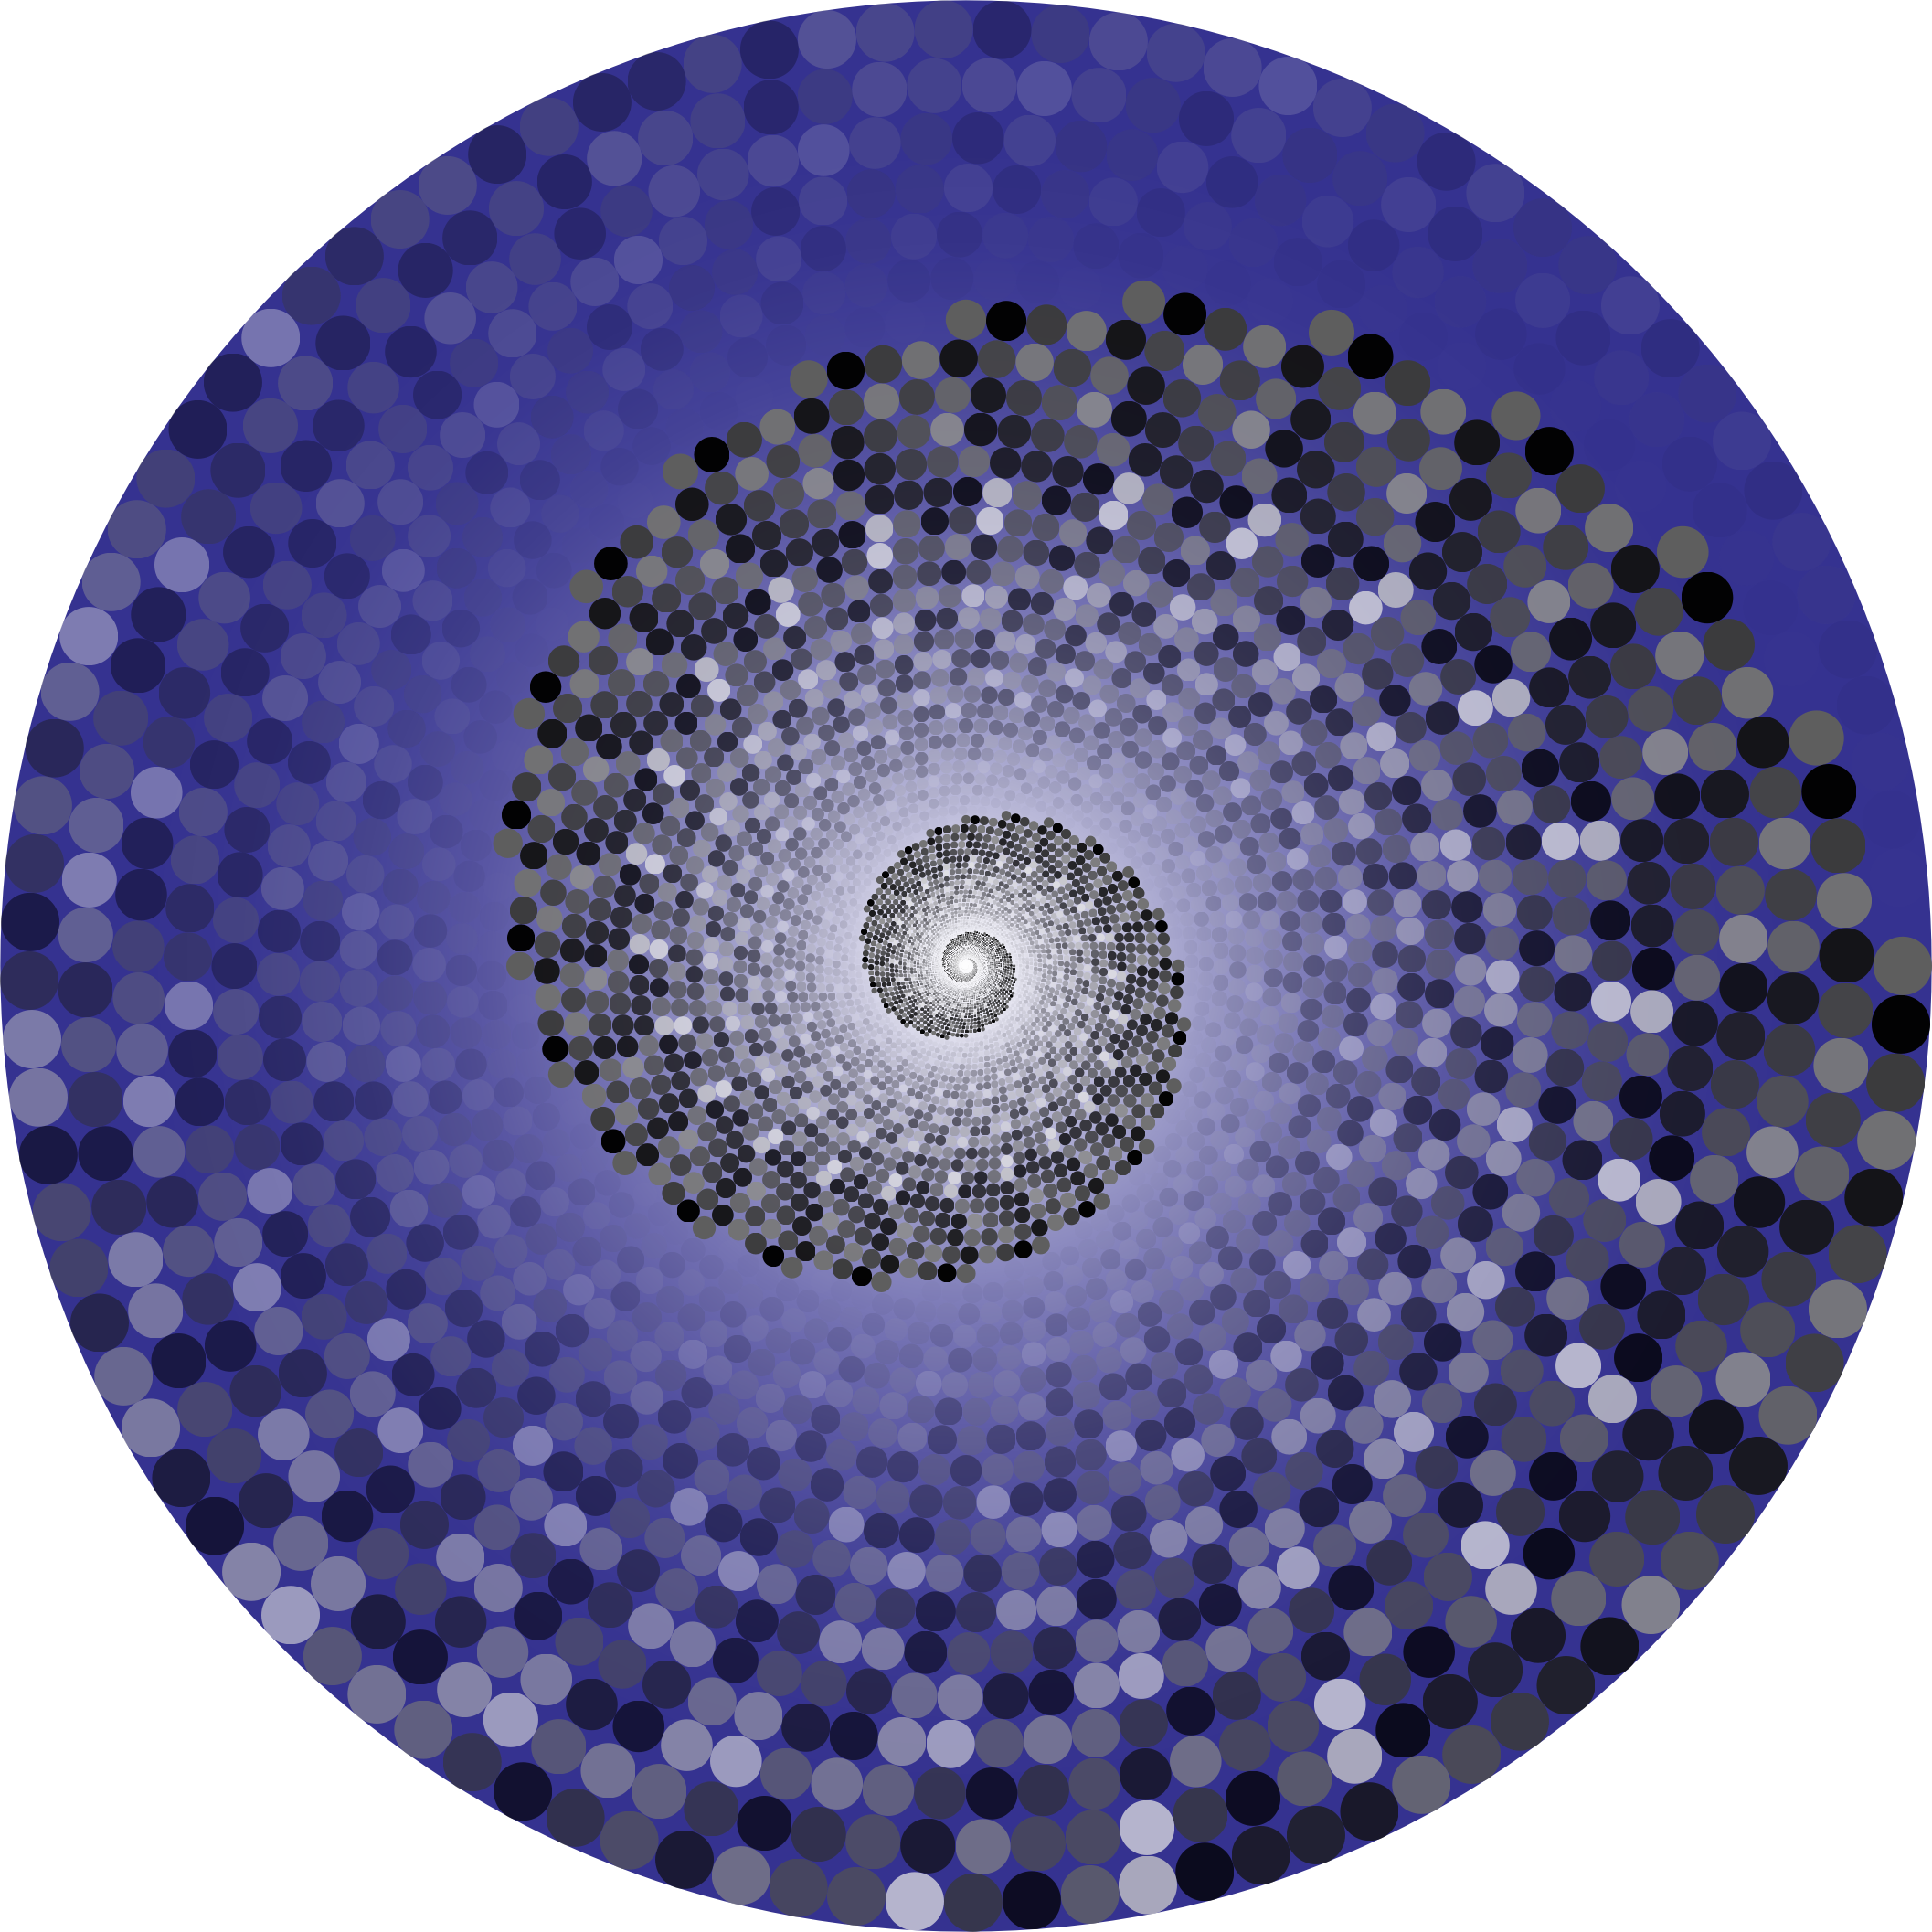 Grayscale Swirling Circles Vortex Variation 6 by GDJ